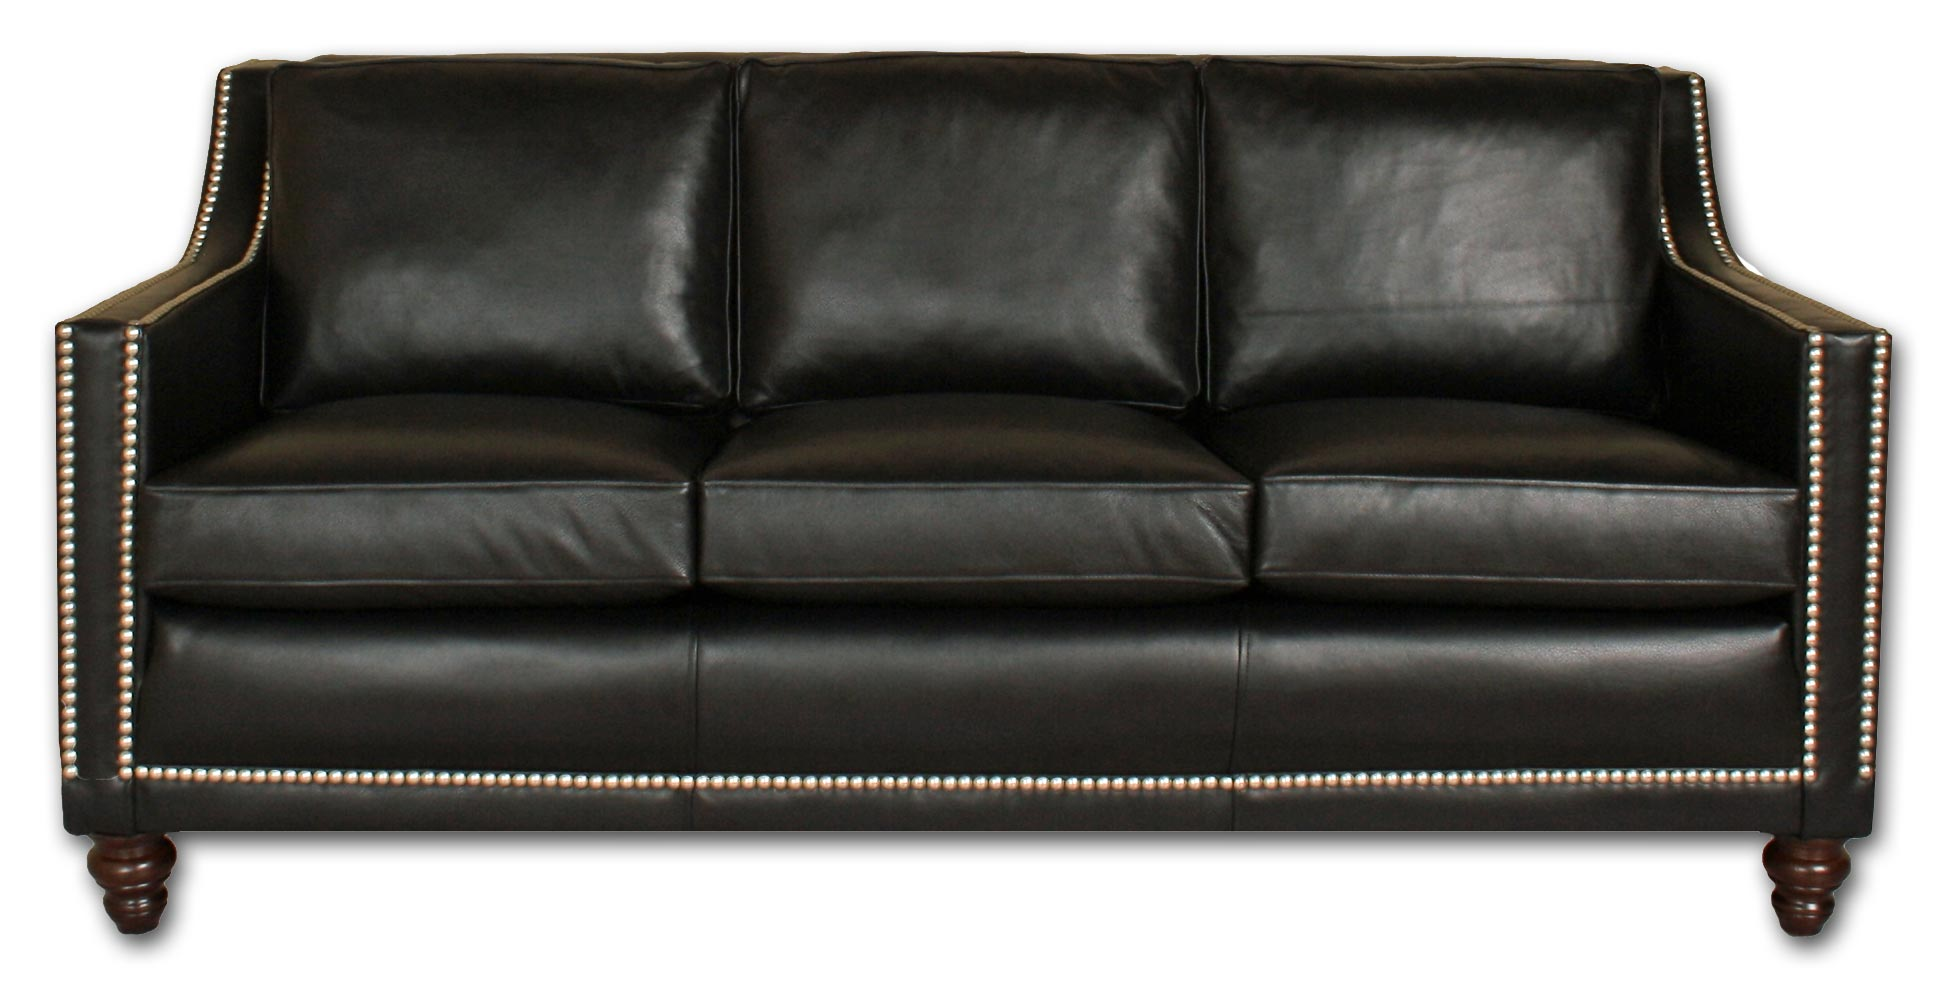 Charming Leather Creations Furniture Sofas Love Seats And Chairs